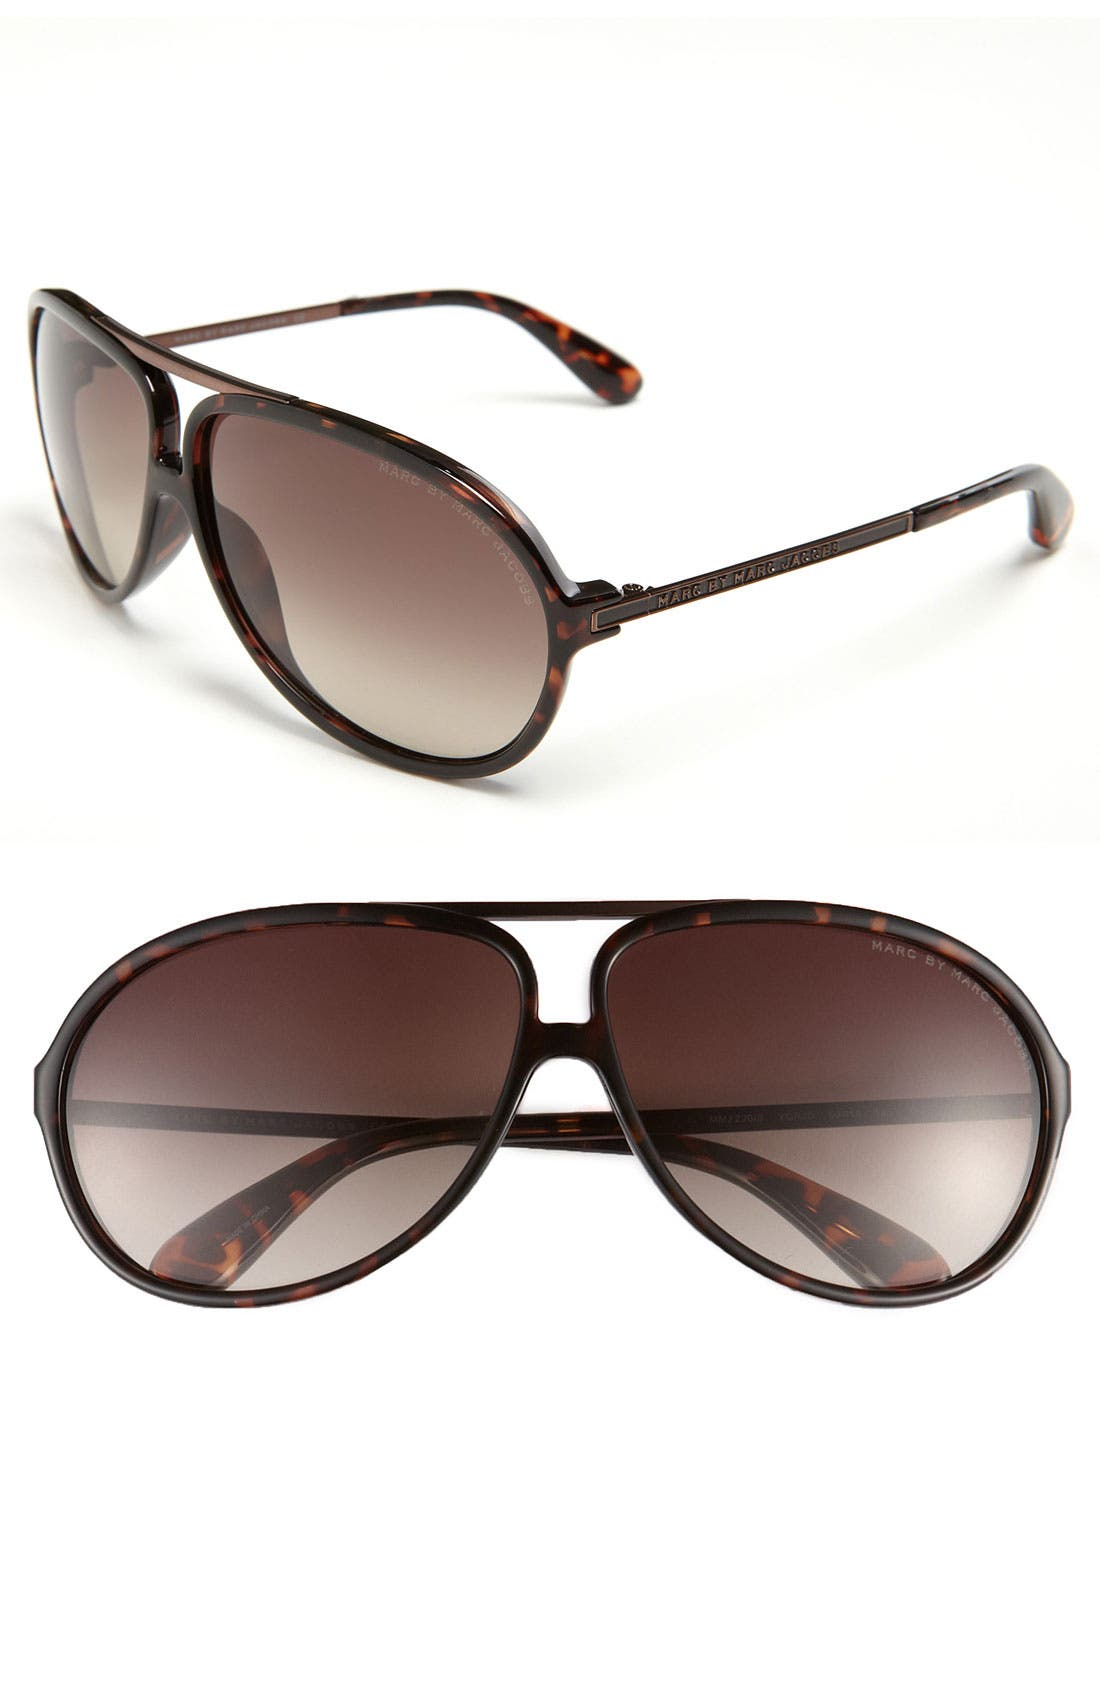 Main Image - MARC BY MARC JACOBS Sunglasses